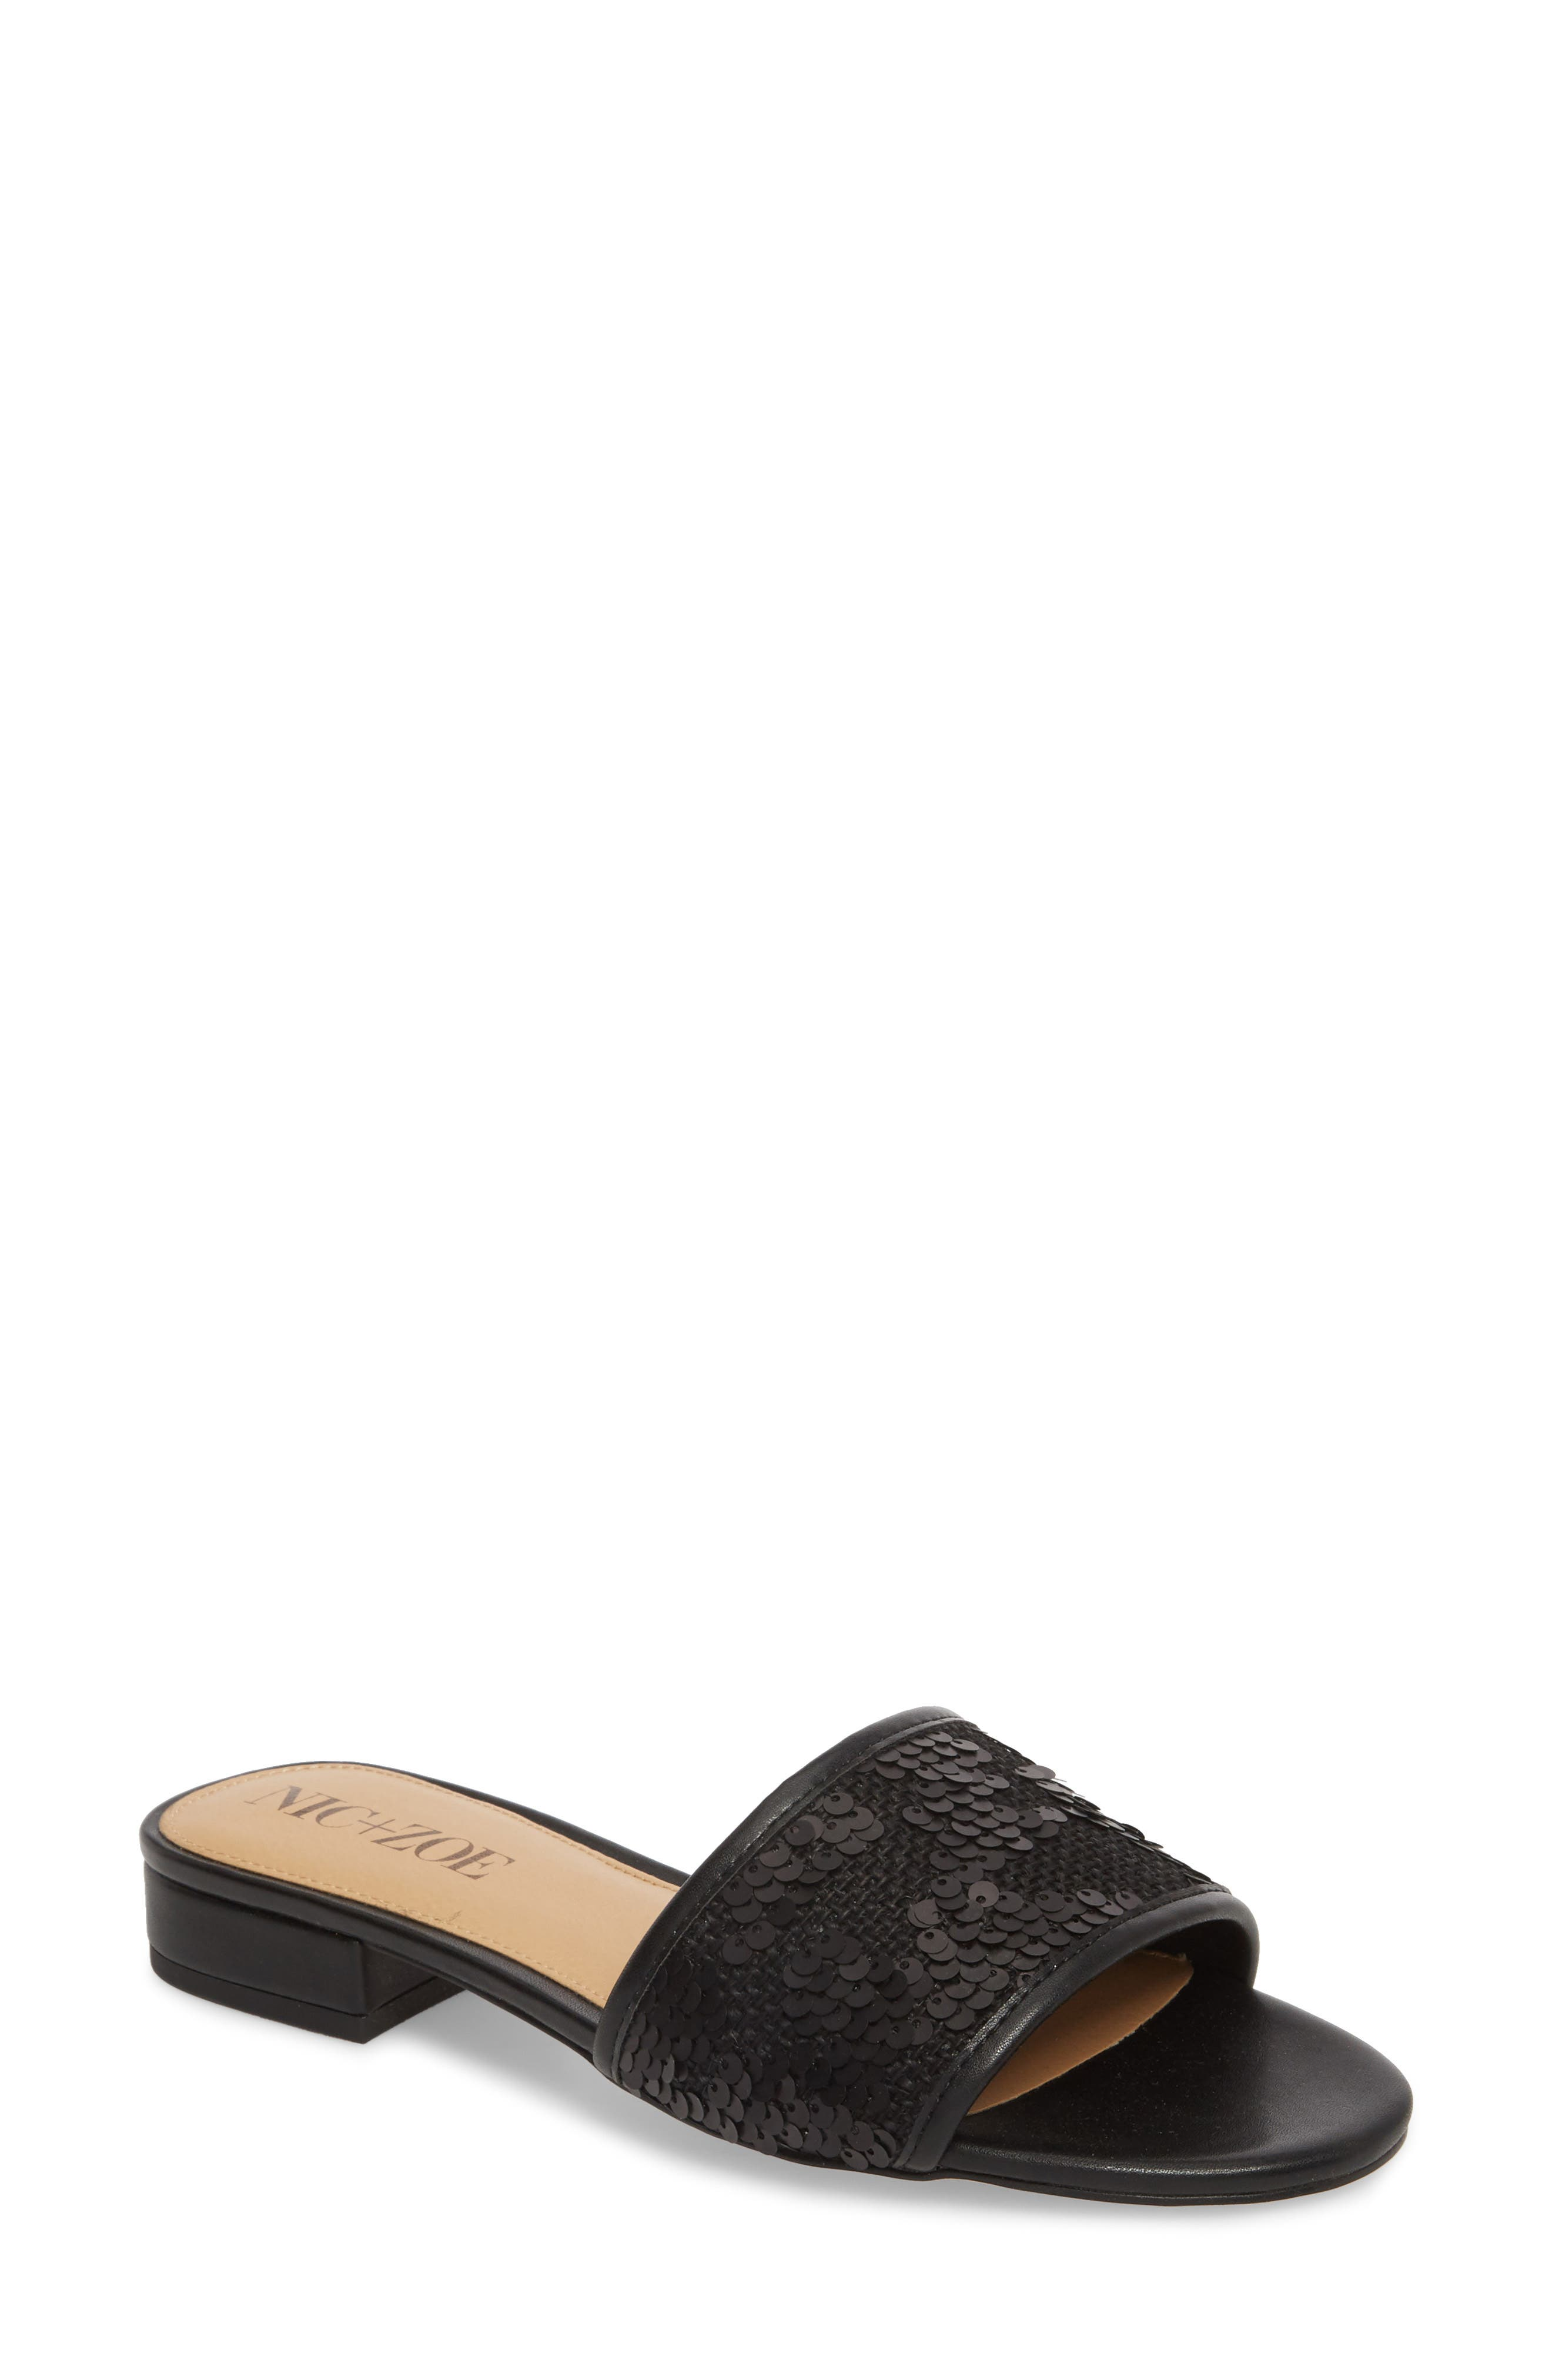 NIC + ZOE Sandy Sequin Low Heel Slide (Women)